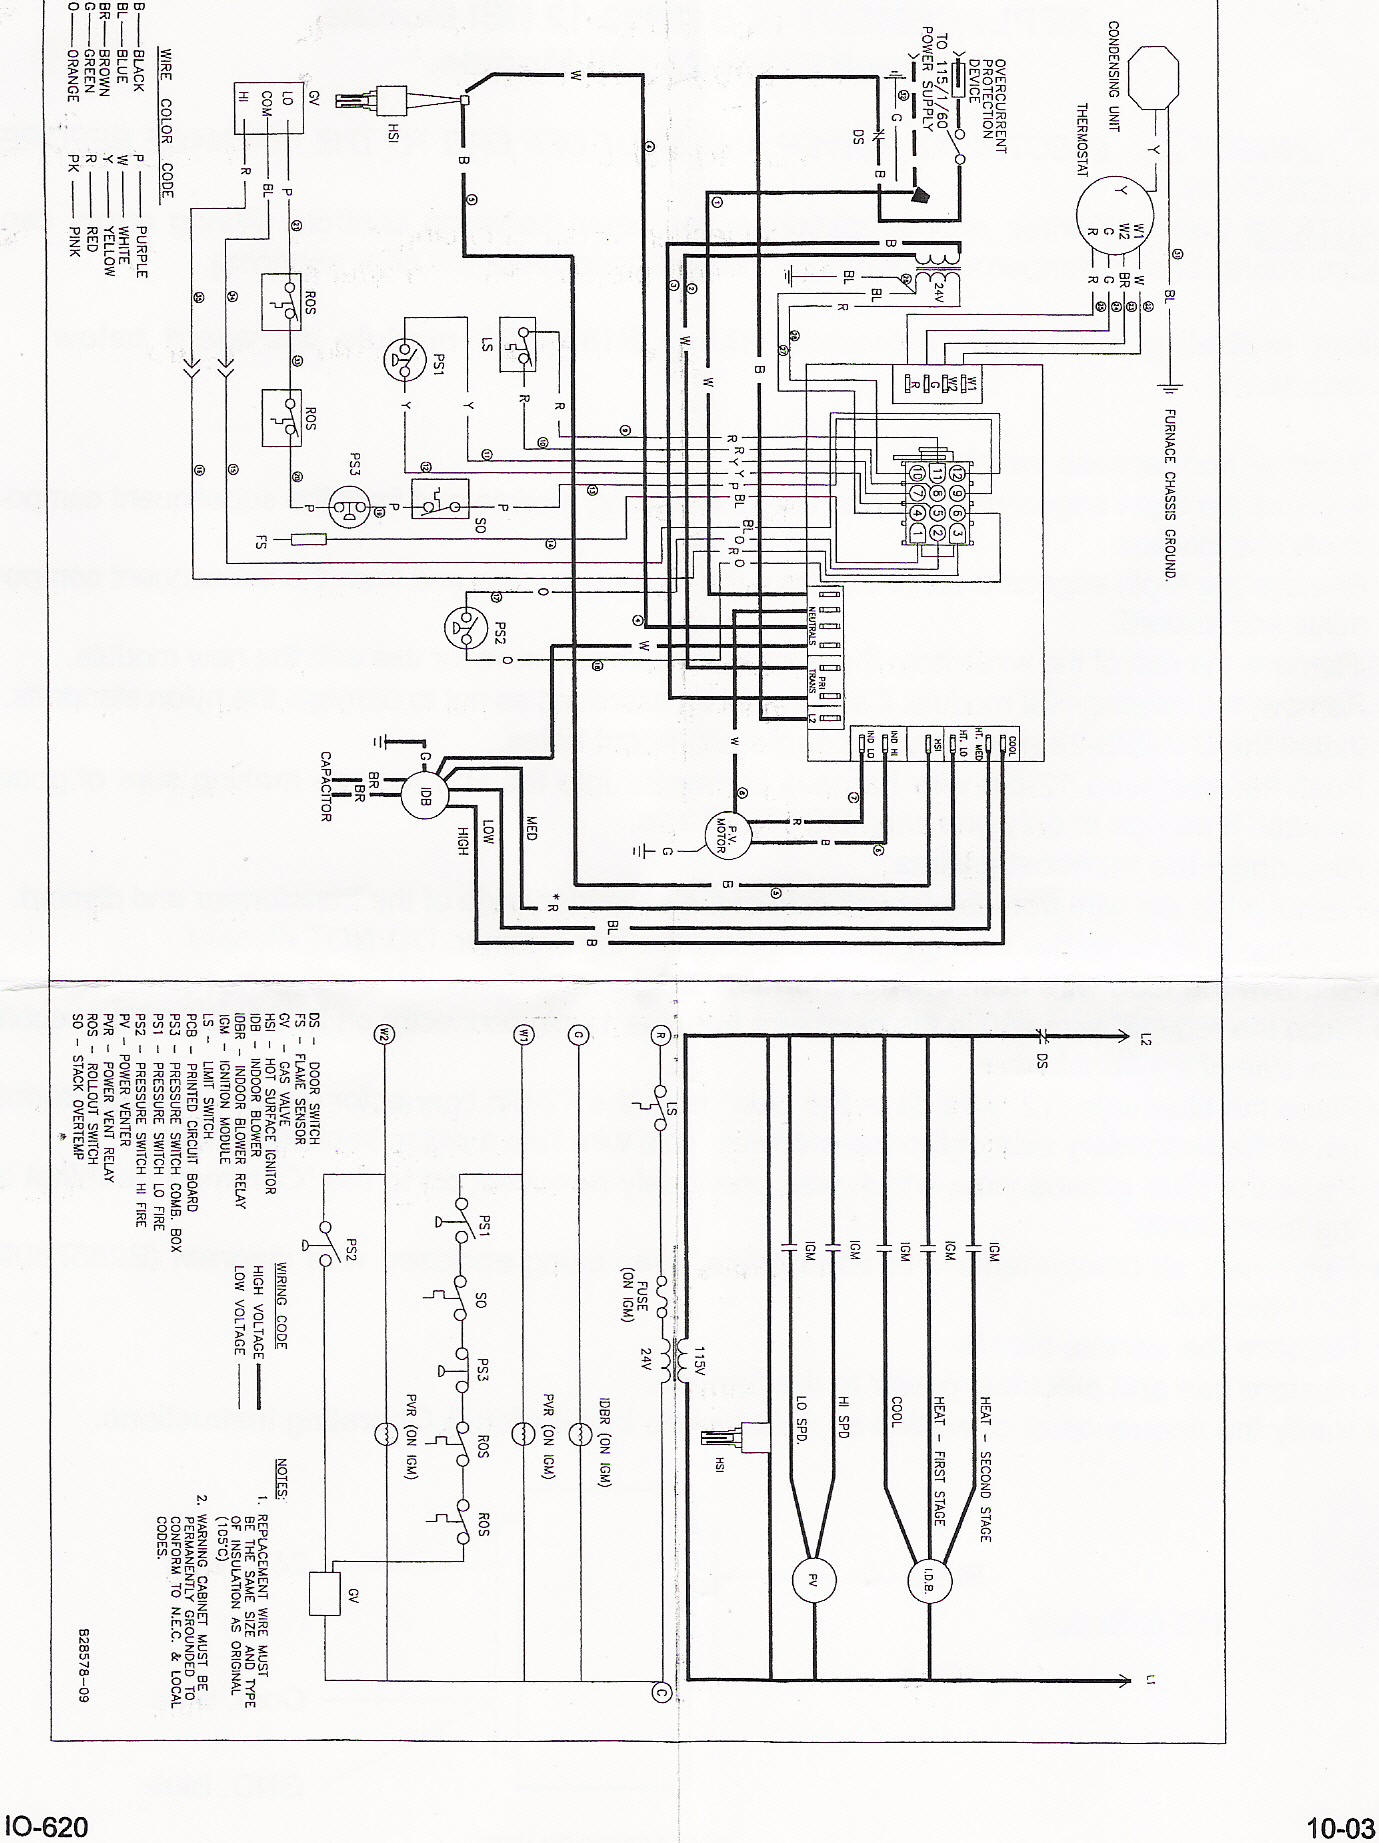 Goodman Control Board B 23 Instructions